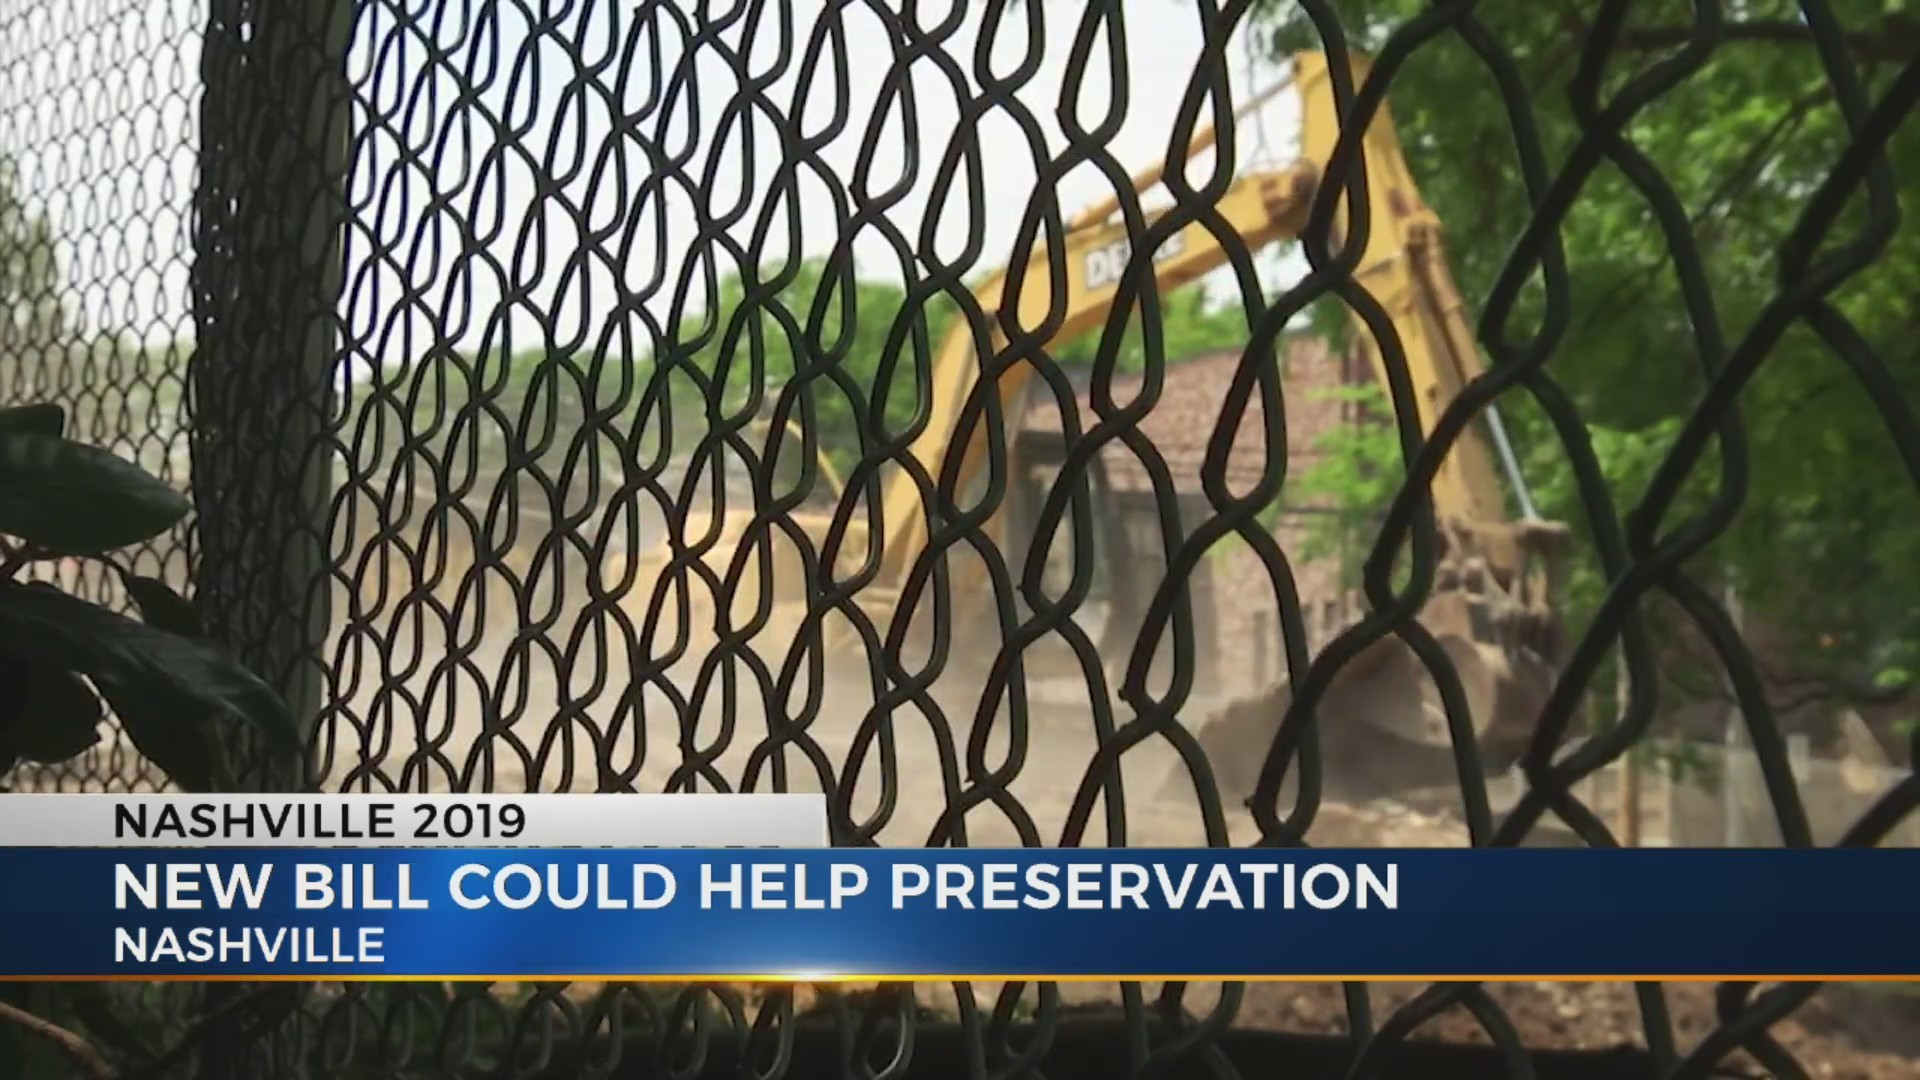 New bill could help preservation